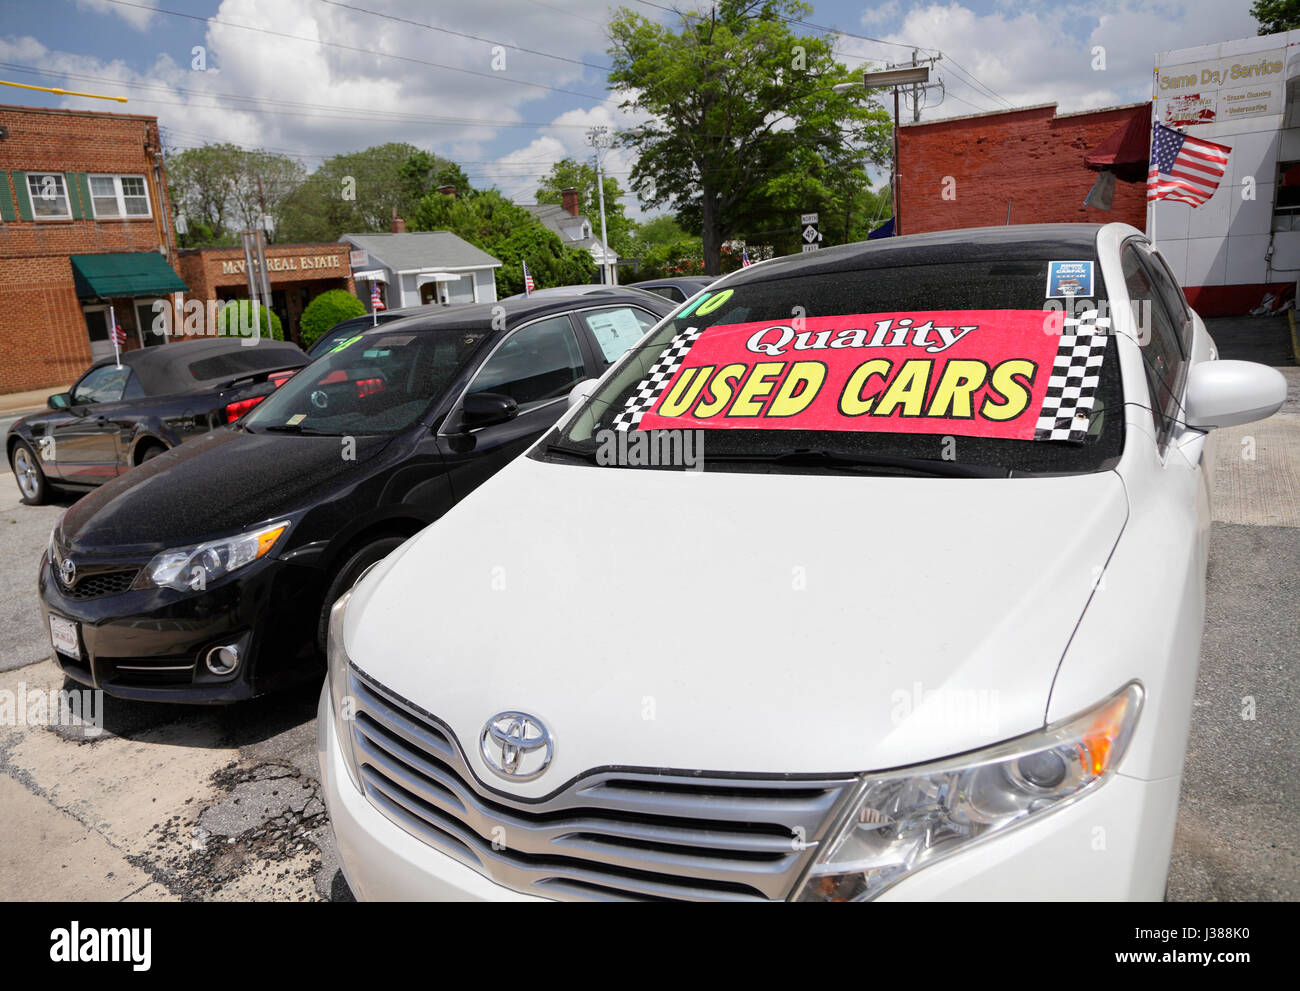 Used Cars For Sale North Carolina Usa Stock Photo 139709332 Alamy